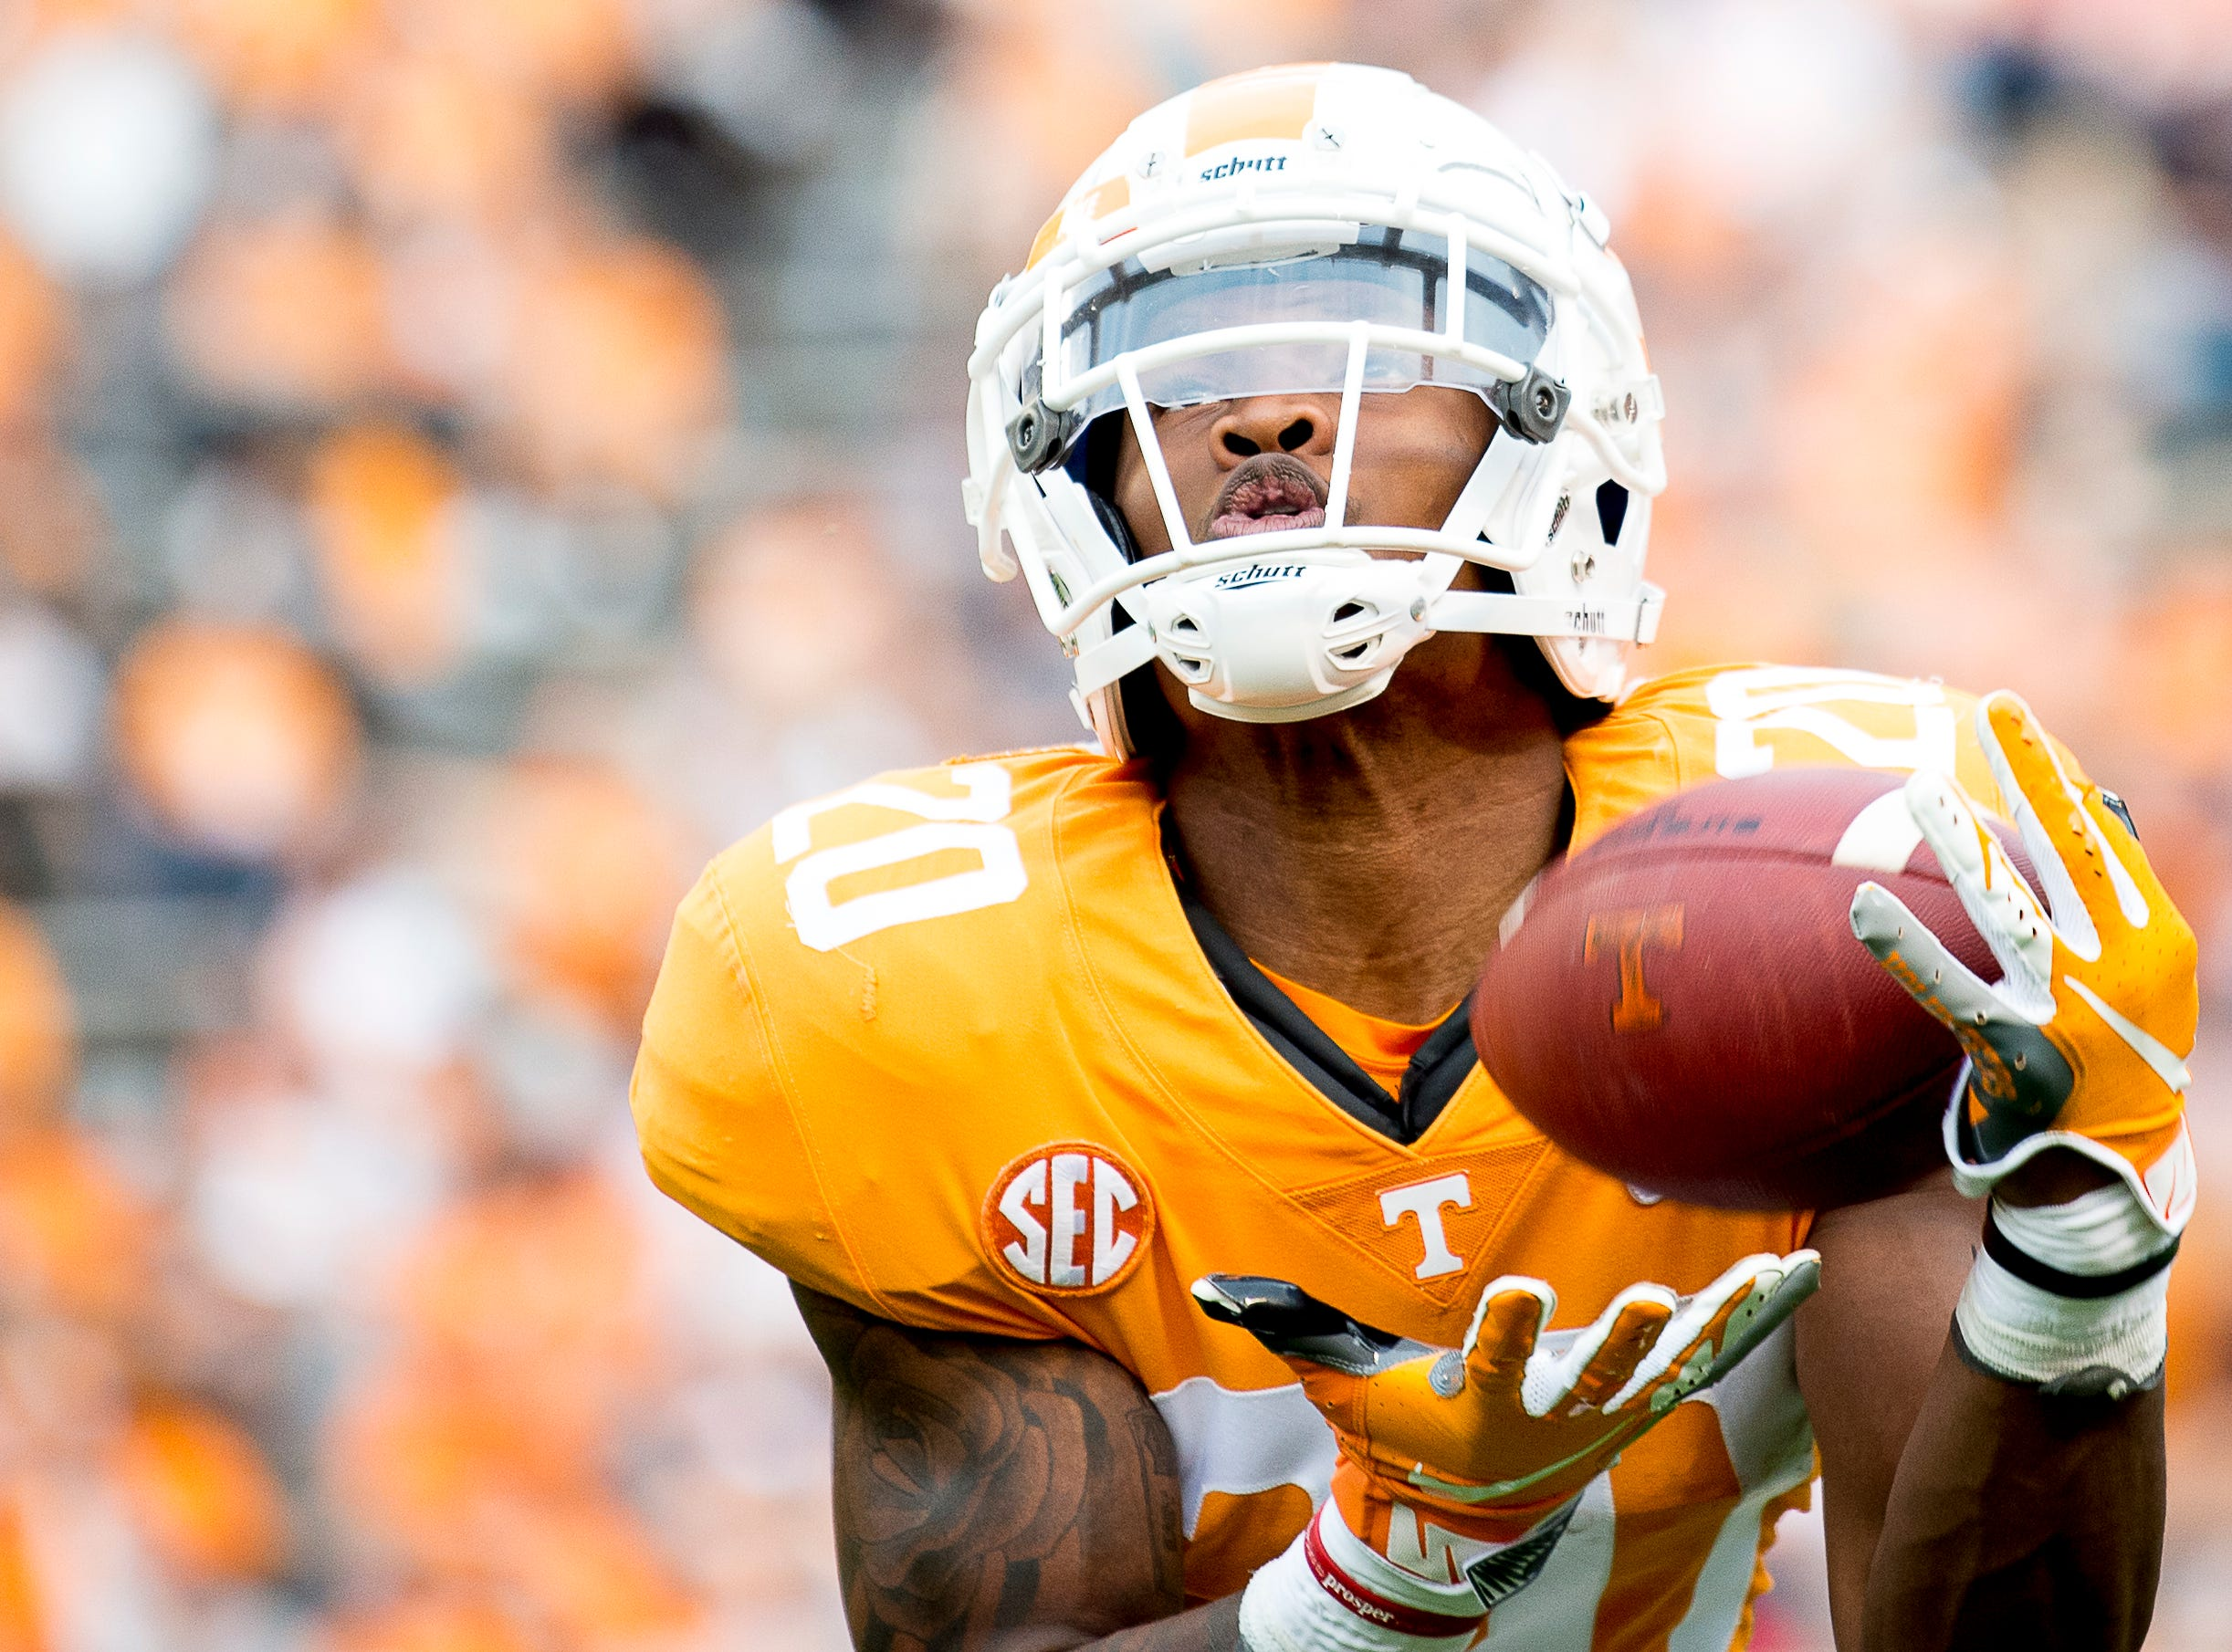 Tennessee defensive back Bryce Thompson (20) catches a pass during  the Tennessee Spring Game at Neyland Stadium in Knoxville, Tennessee on Saturday, April 13, 2019.